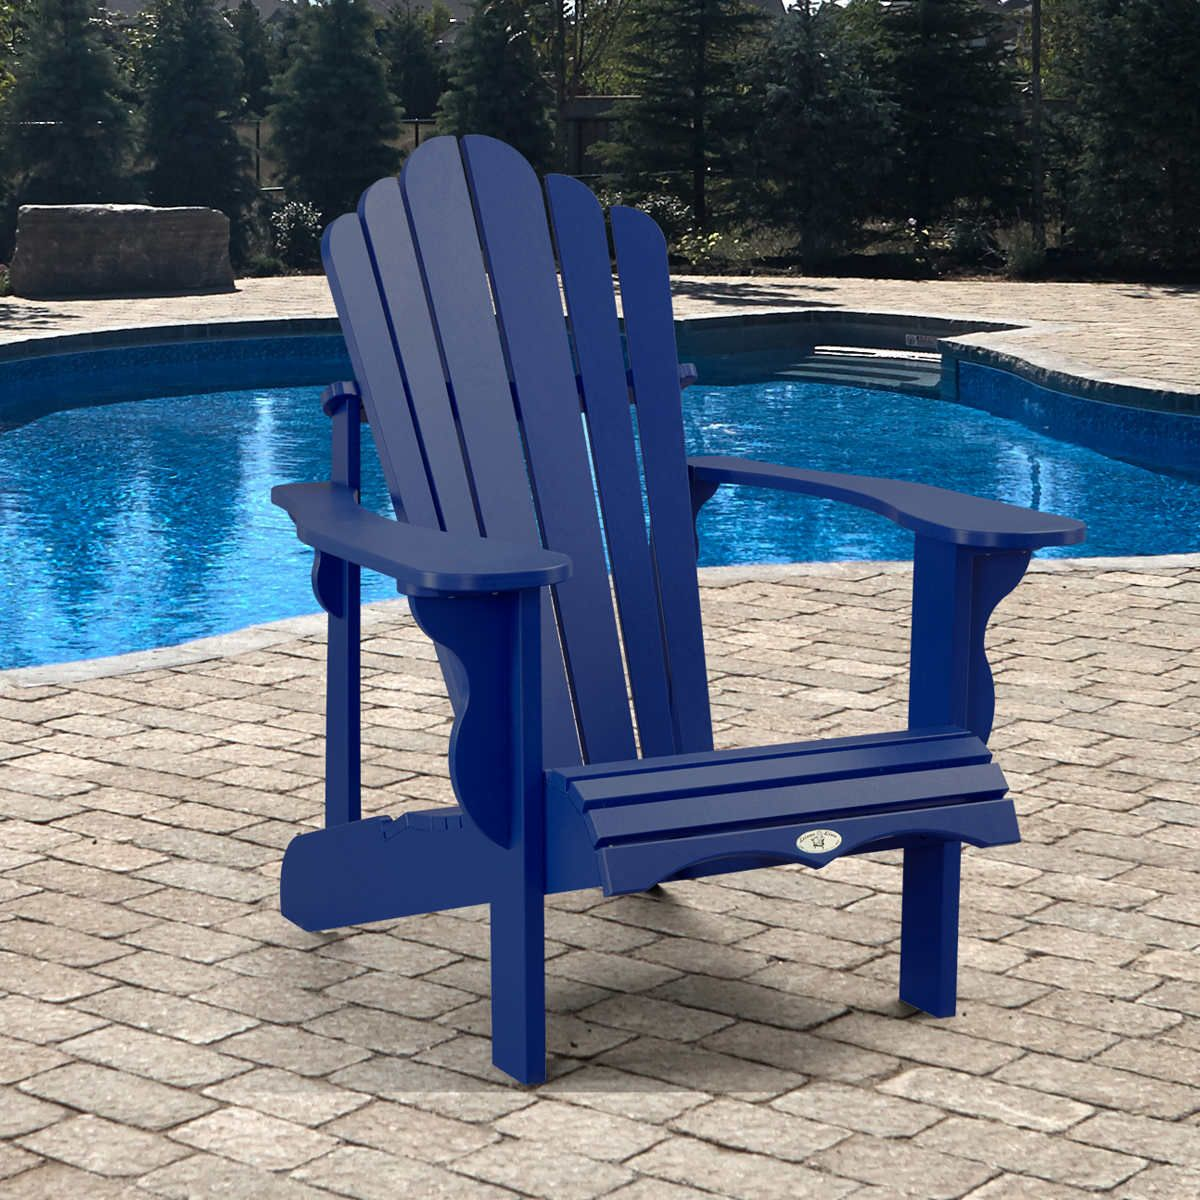 blue 1 Adirondack chair, Adirondack, Pool chairs